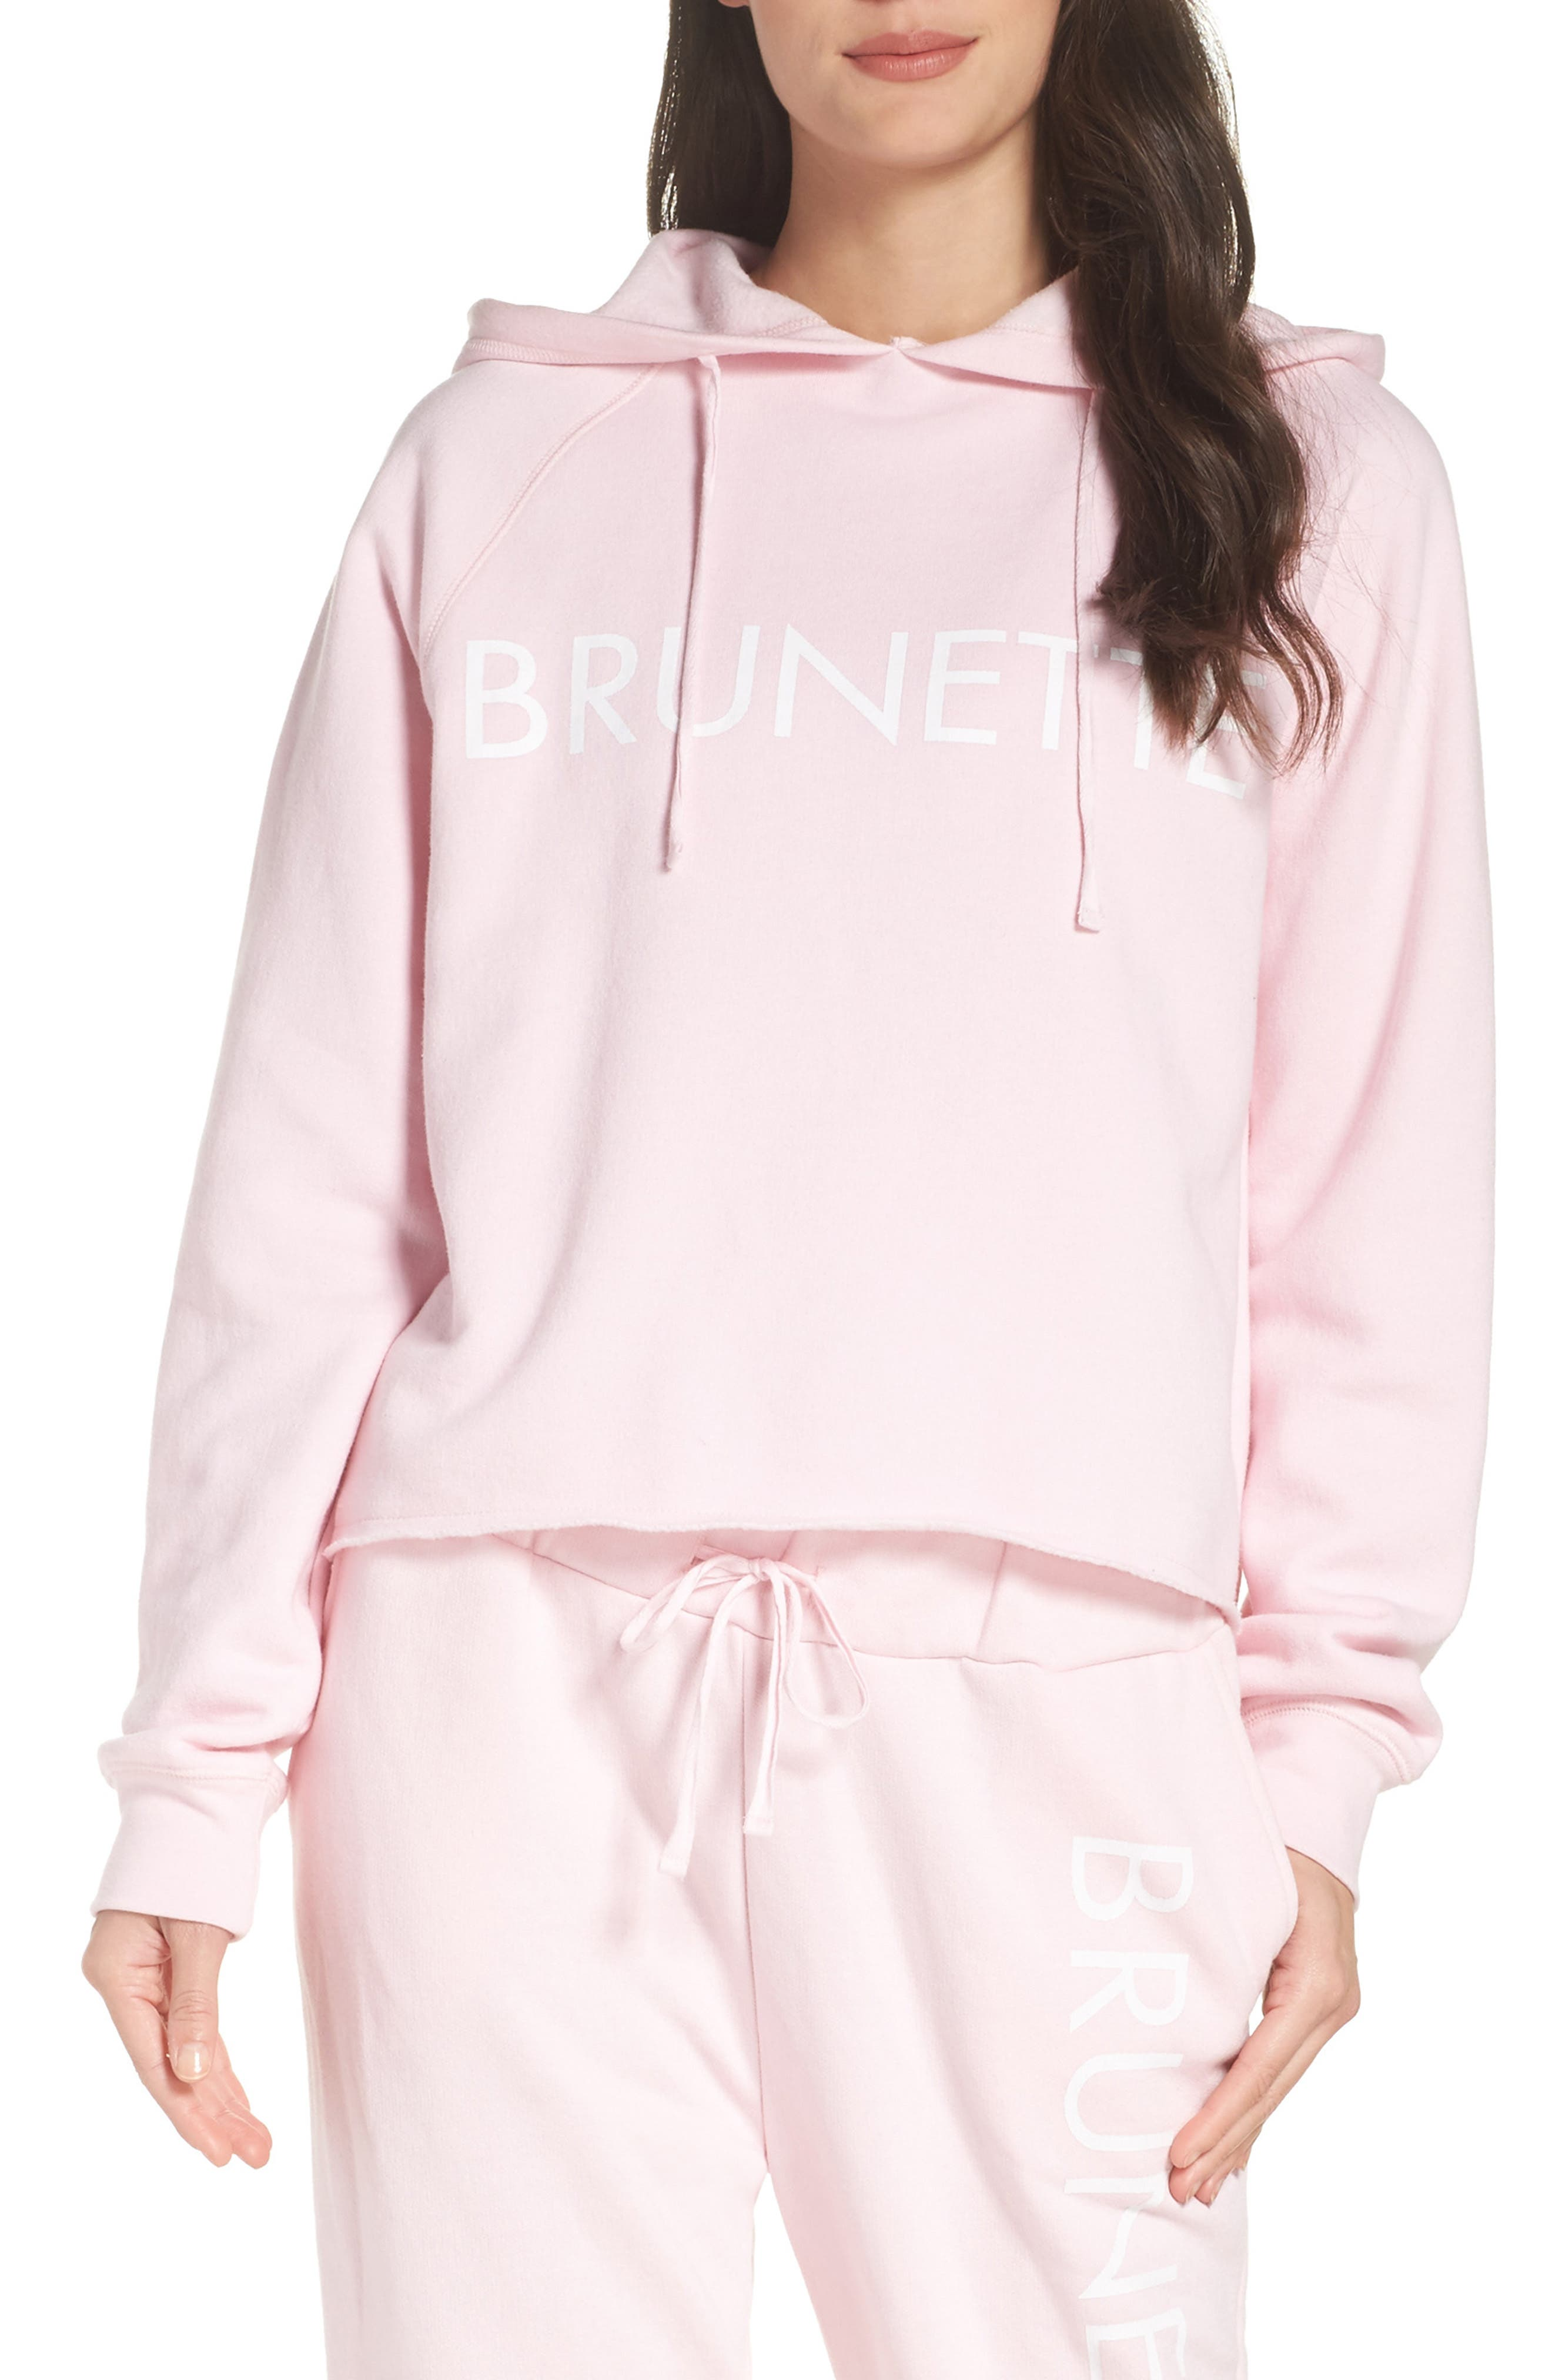 Middle Sister - Brunette Hoodie,                             Main thumbnail 1, color,                             650